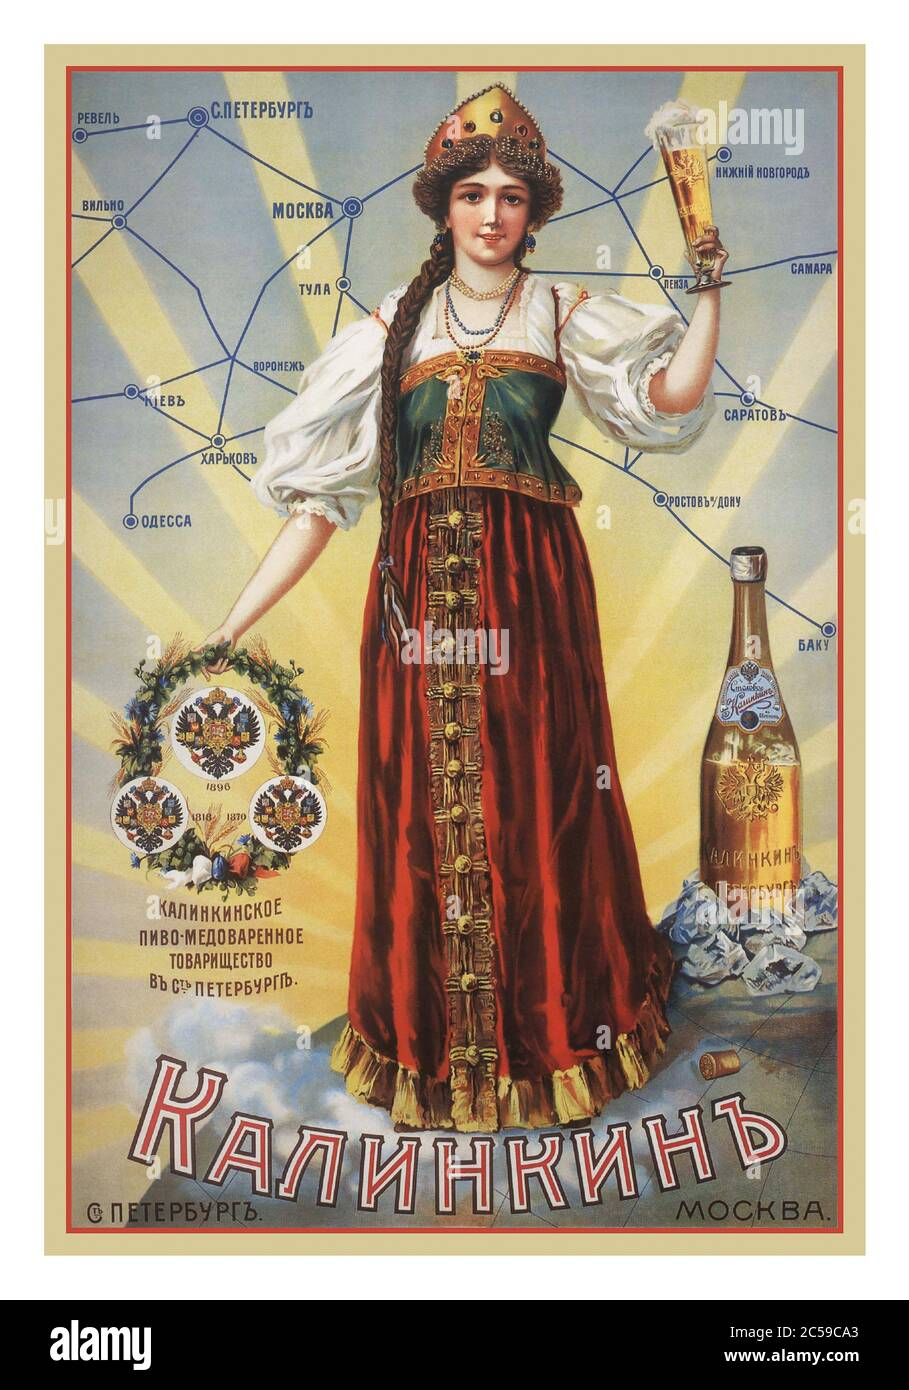 Russian Beer High Resolution Stock Photography And Images Alamy,Crochet Elephant Afghan Pattern Free